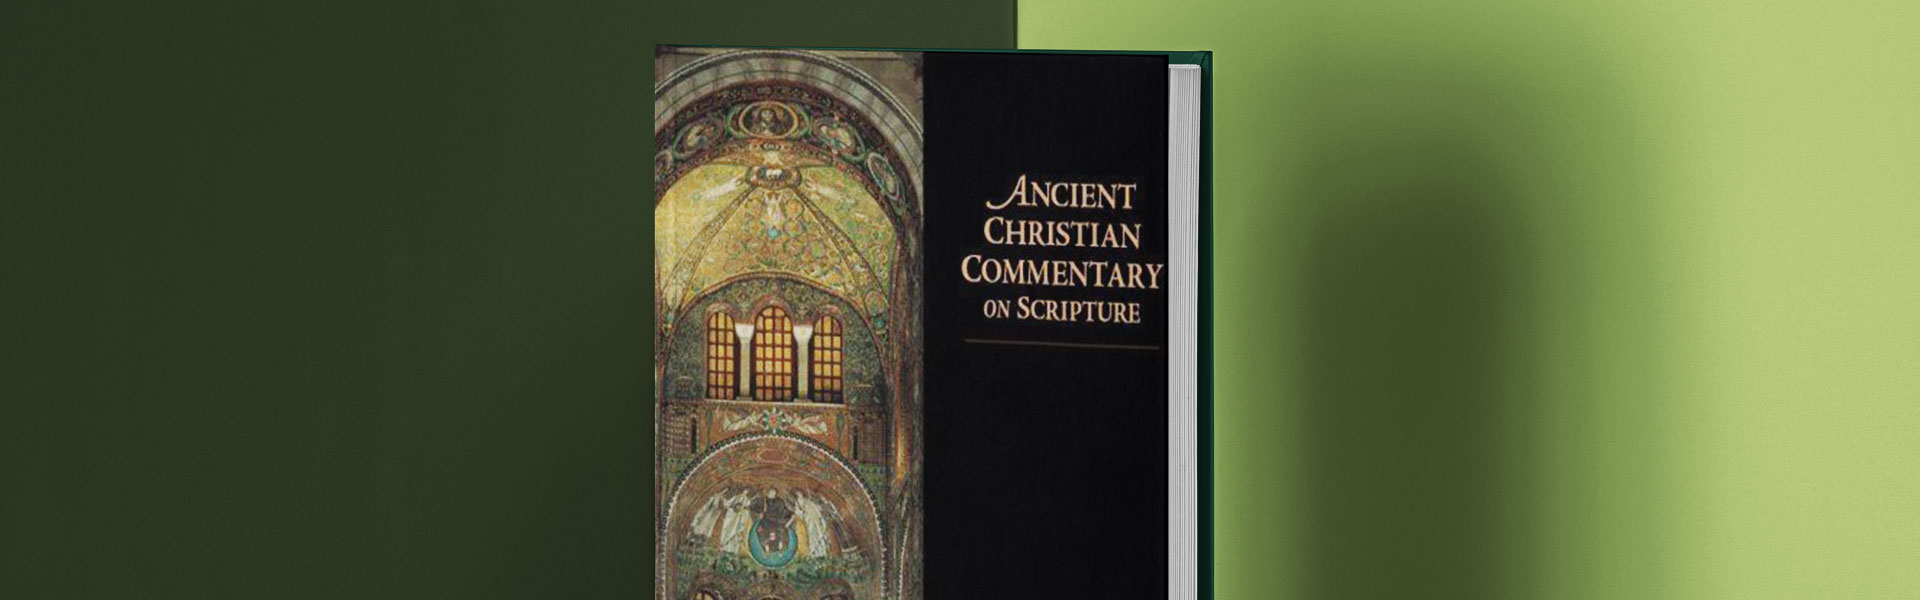 Ancient Christian Commentary on Scripture - used to research Gregory the Great